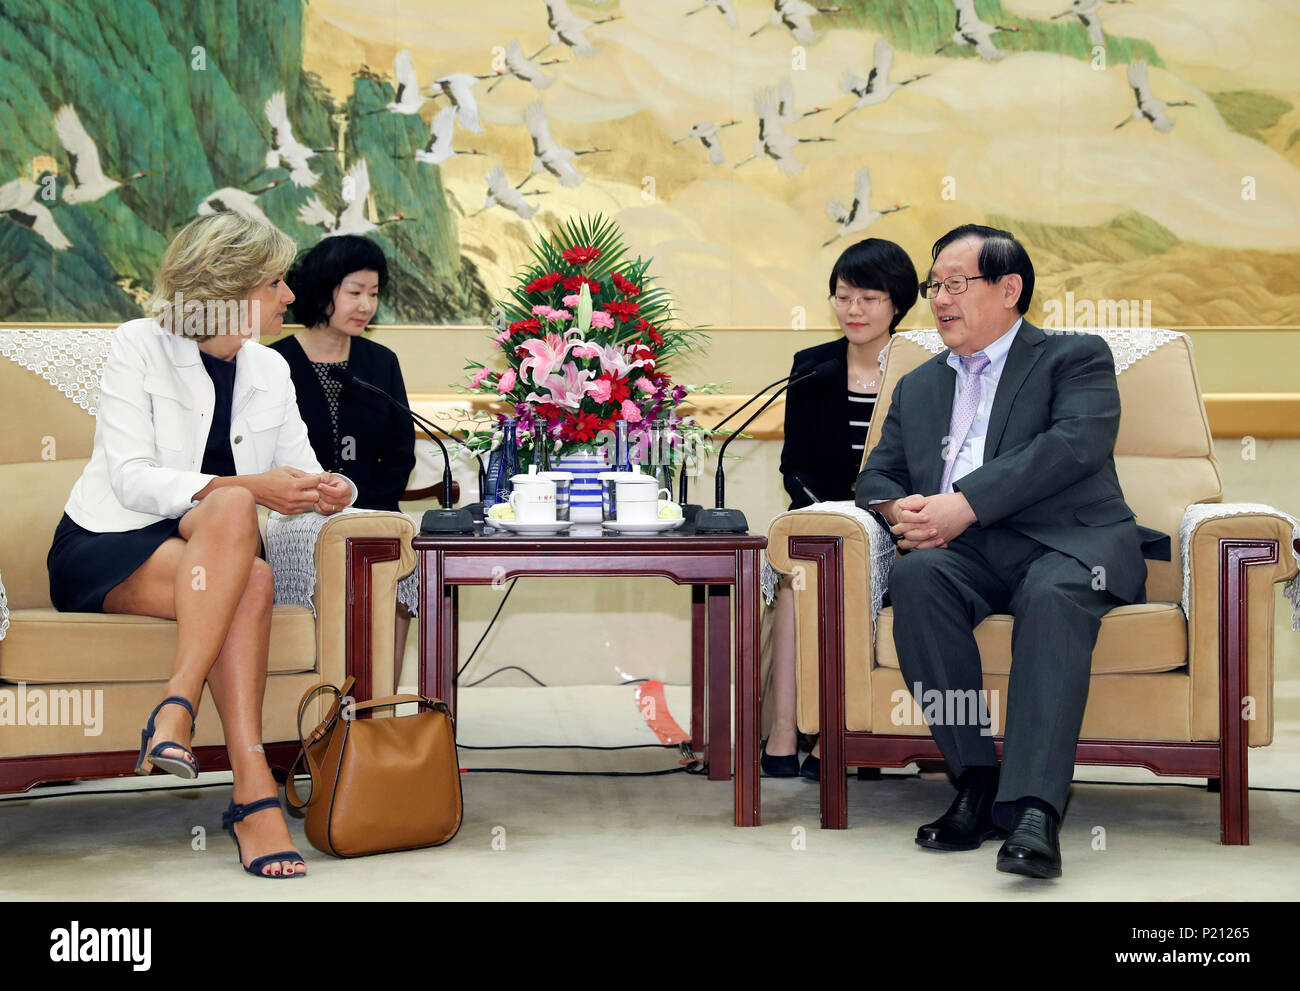 Beijing, China. 13th June, 2018. Wan Gang (R front), vice chairman of the National Committee of the Chinese People's Political Consultative Conference, meets with Valerie Pecresse, president of the regional council of Ile de France, in Beijing, capital of China, June 13, 2018. Credit: Ding Lin/Xinhua/Alamy Live News - Stock Image